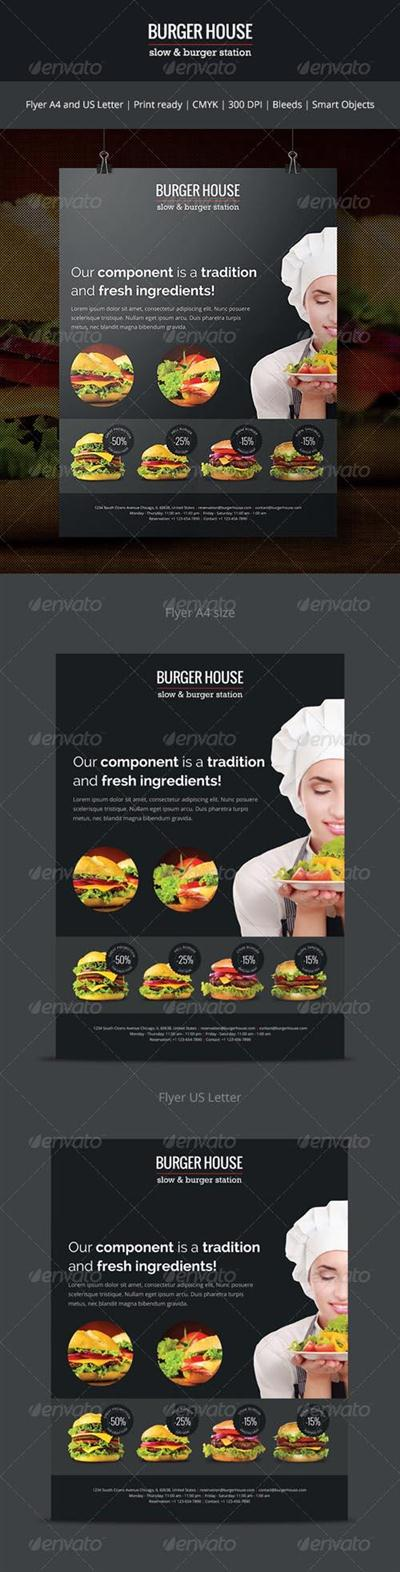 Burger House - Flyer 7059620